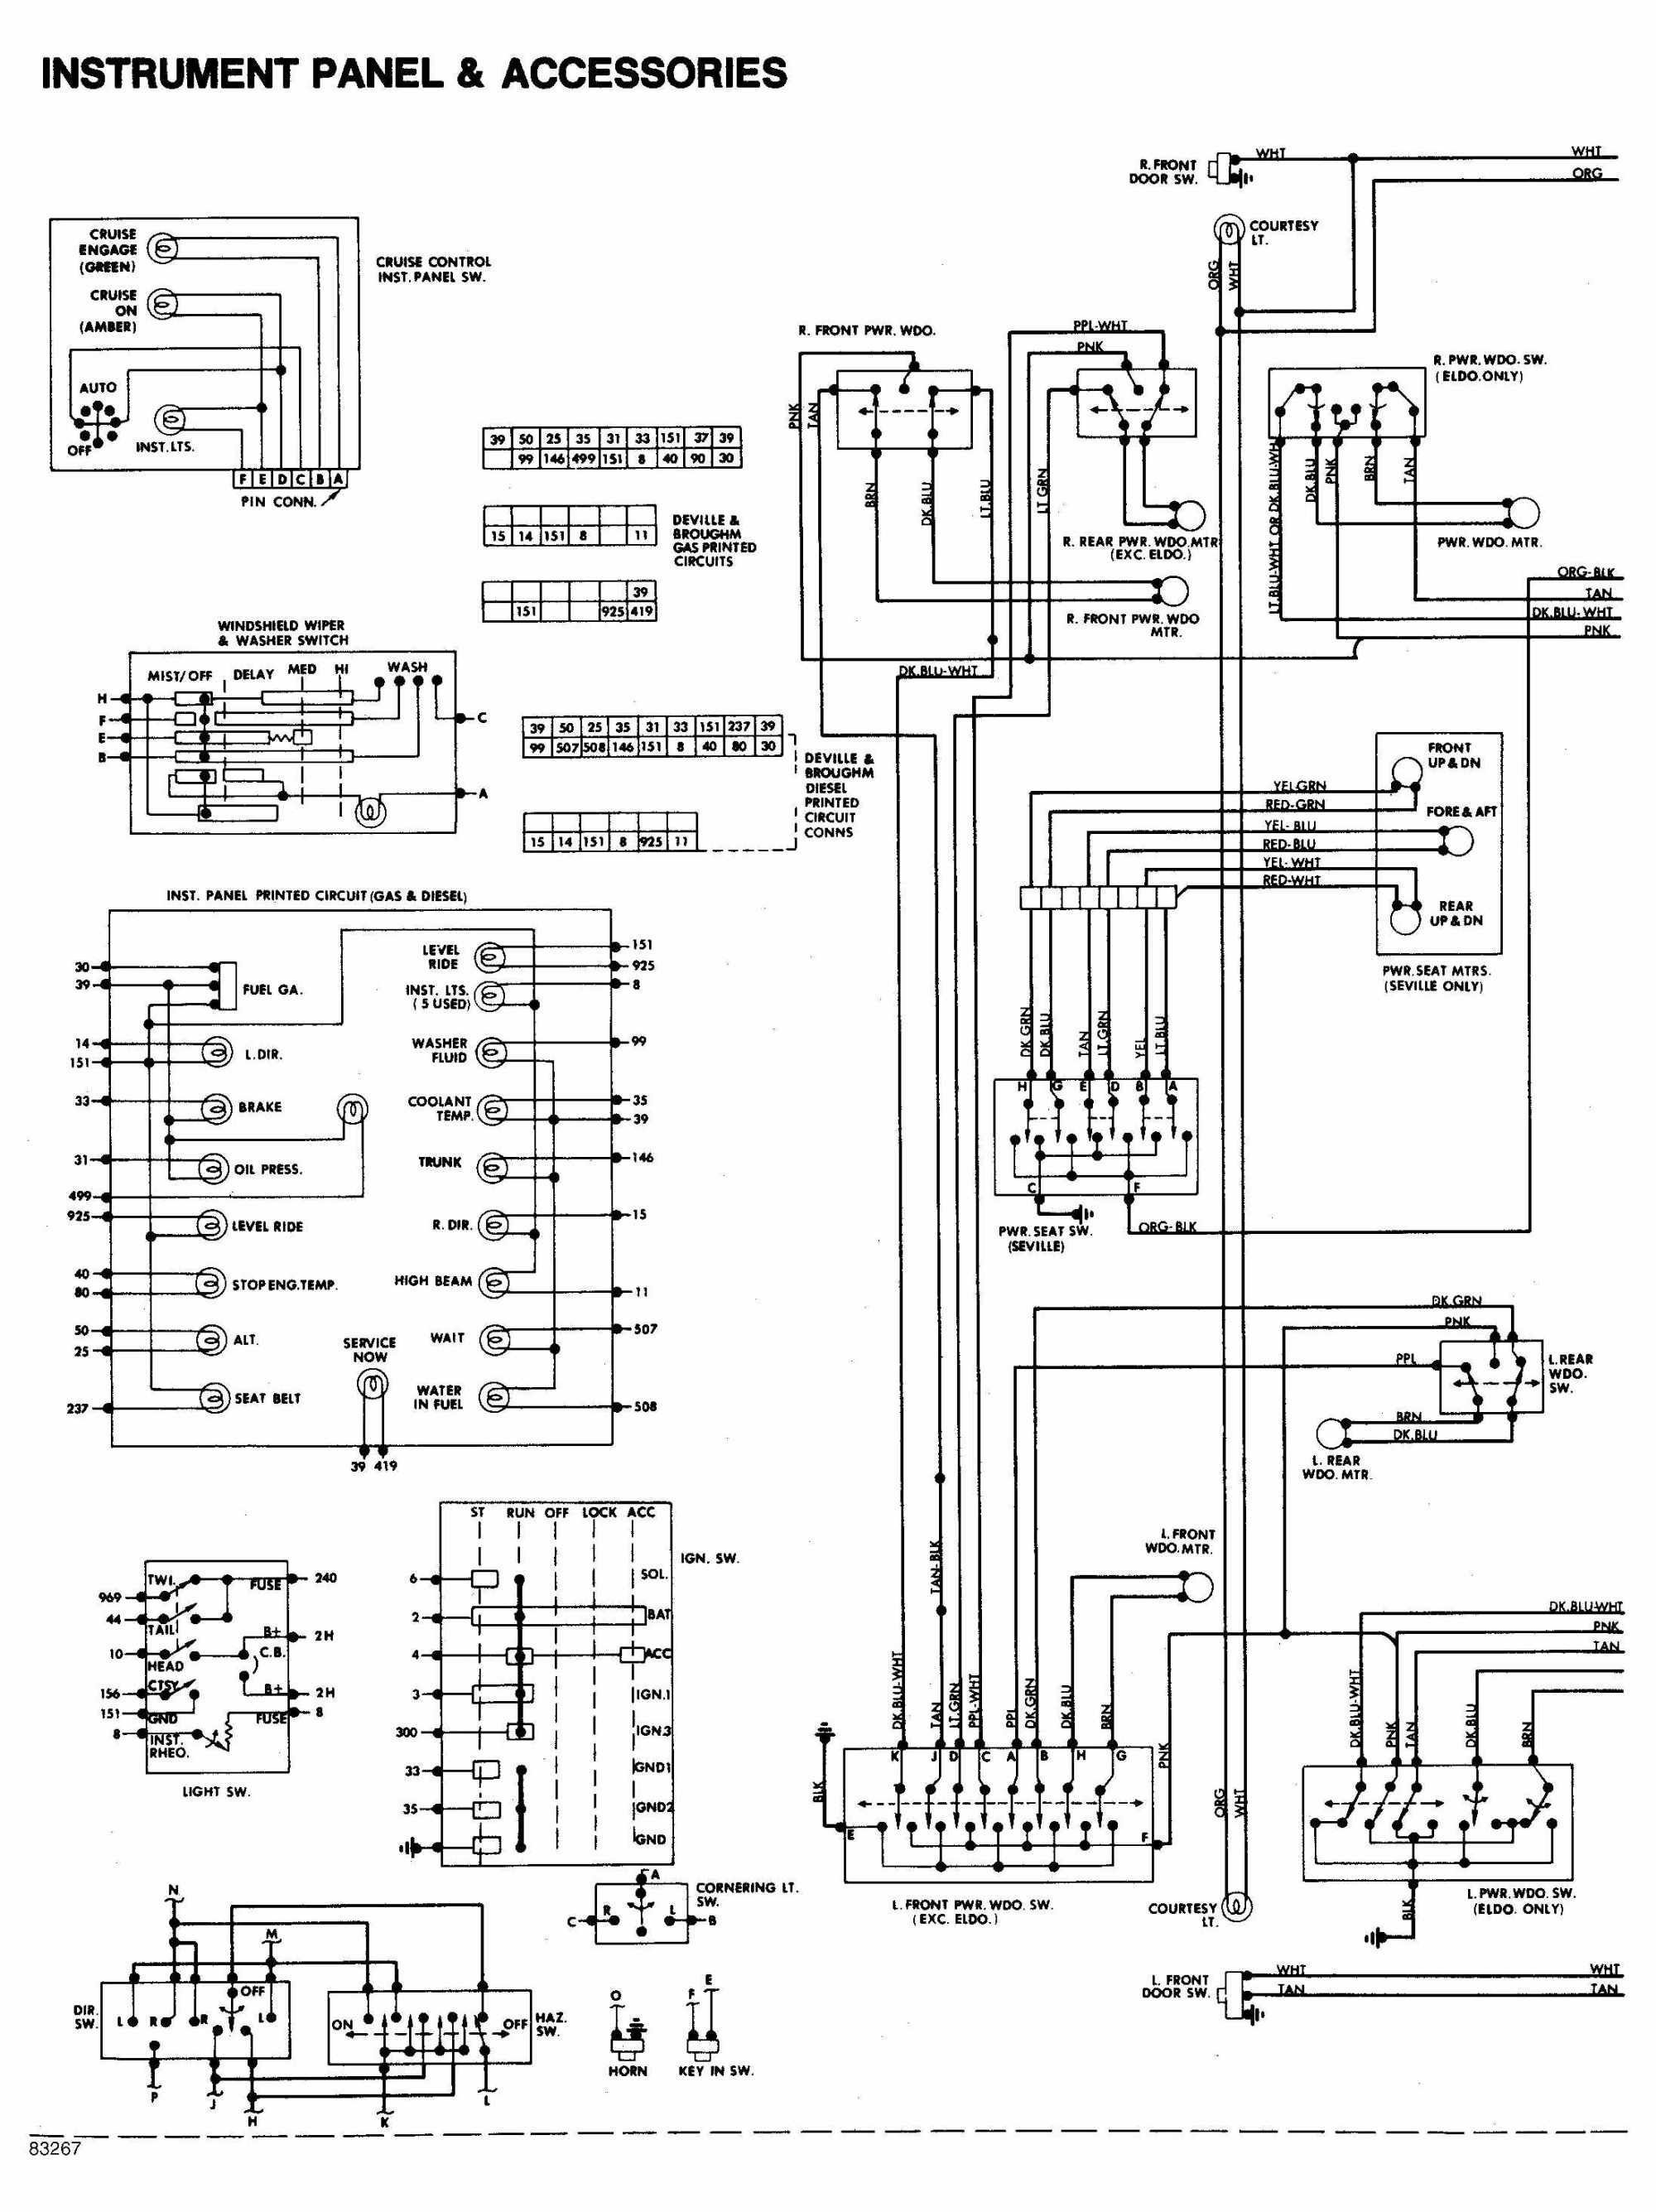 hight resolution of 1991 chevy corvette fuse box diagram wiring schematic wiring diagrams2000 chevy corvette fuse box diagram free